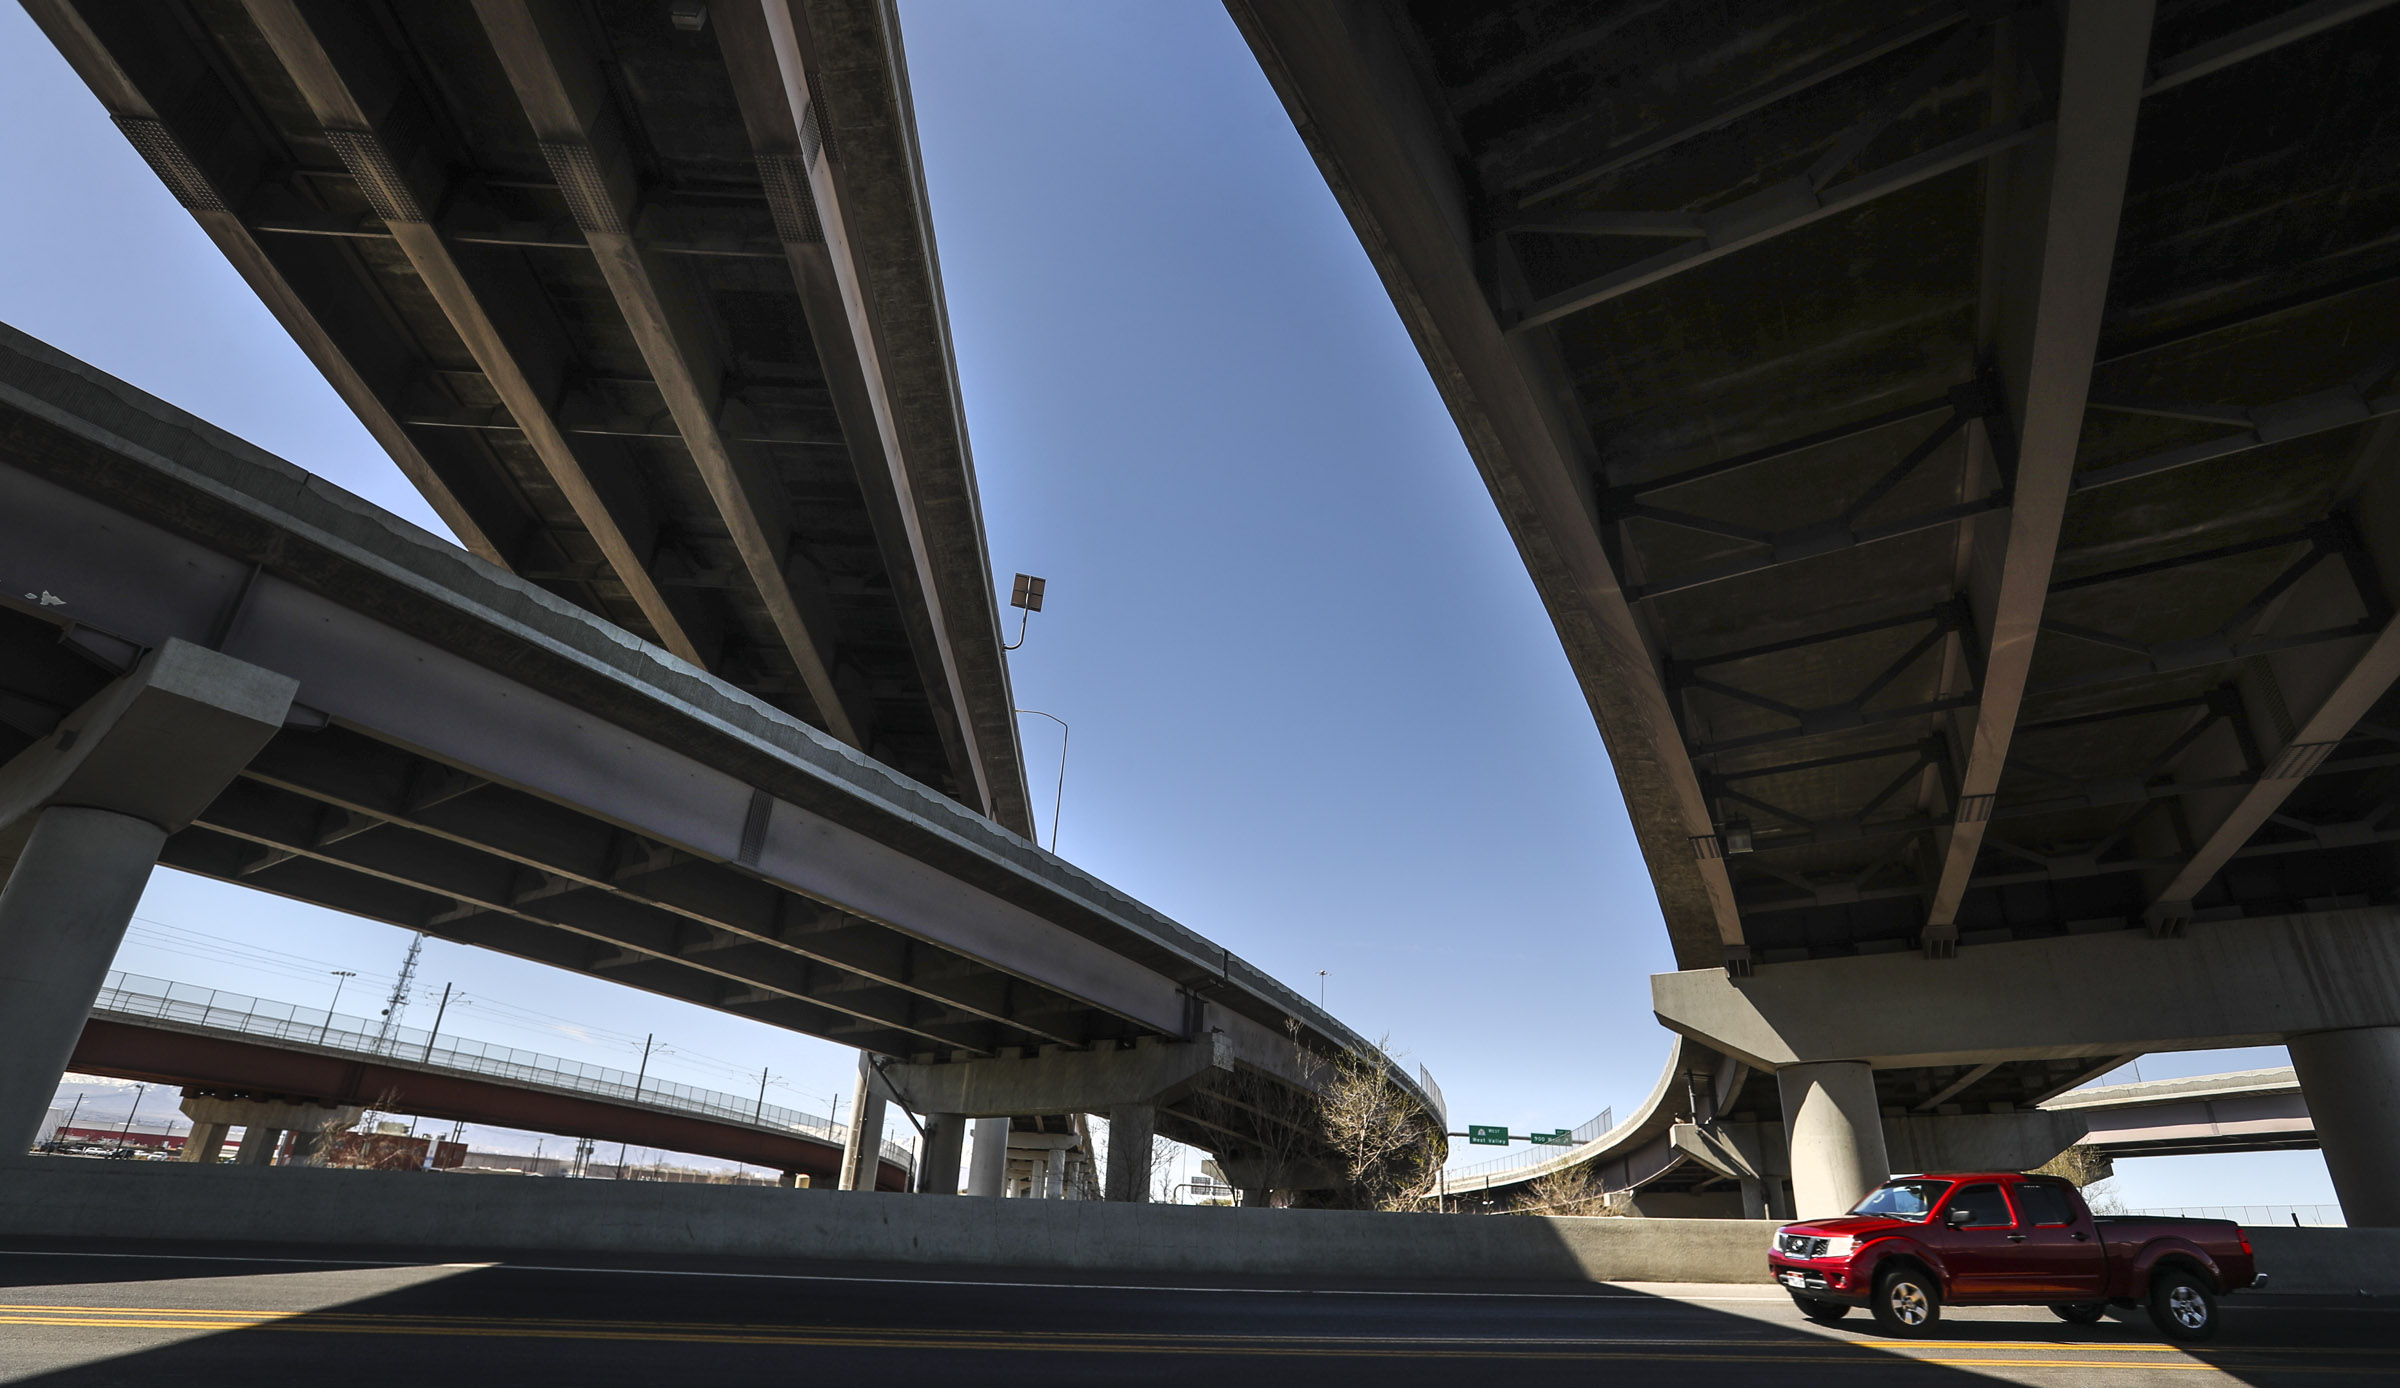 The I-80 and I-15 interchange overpasses cross over 600 West in South Salt Lake on Wednesday, April 7, 2021.